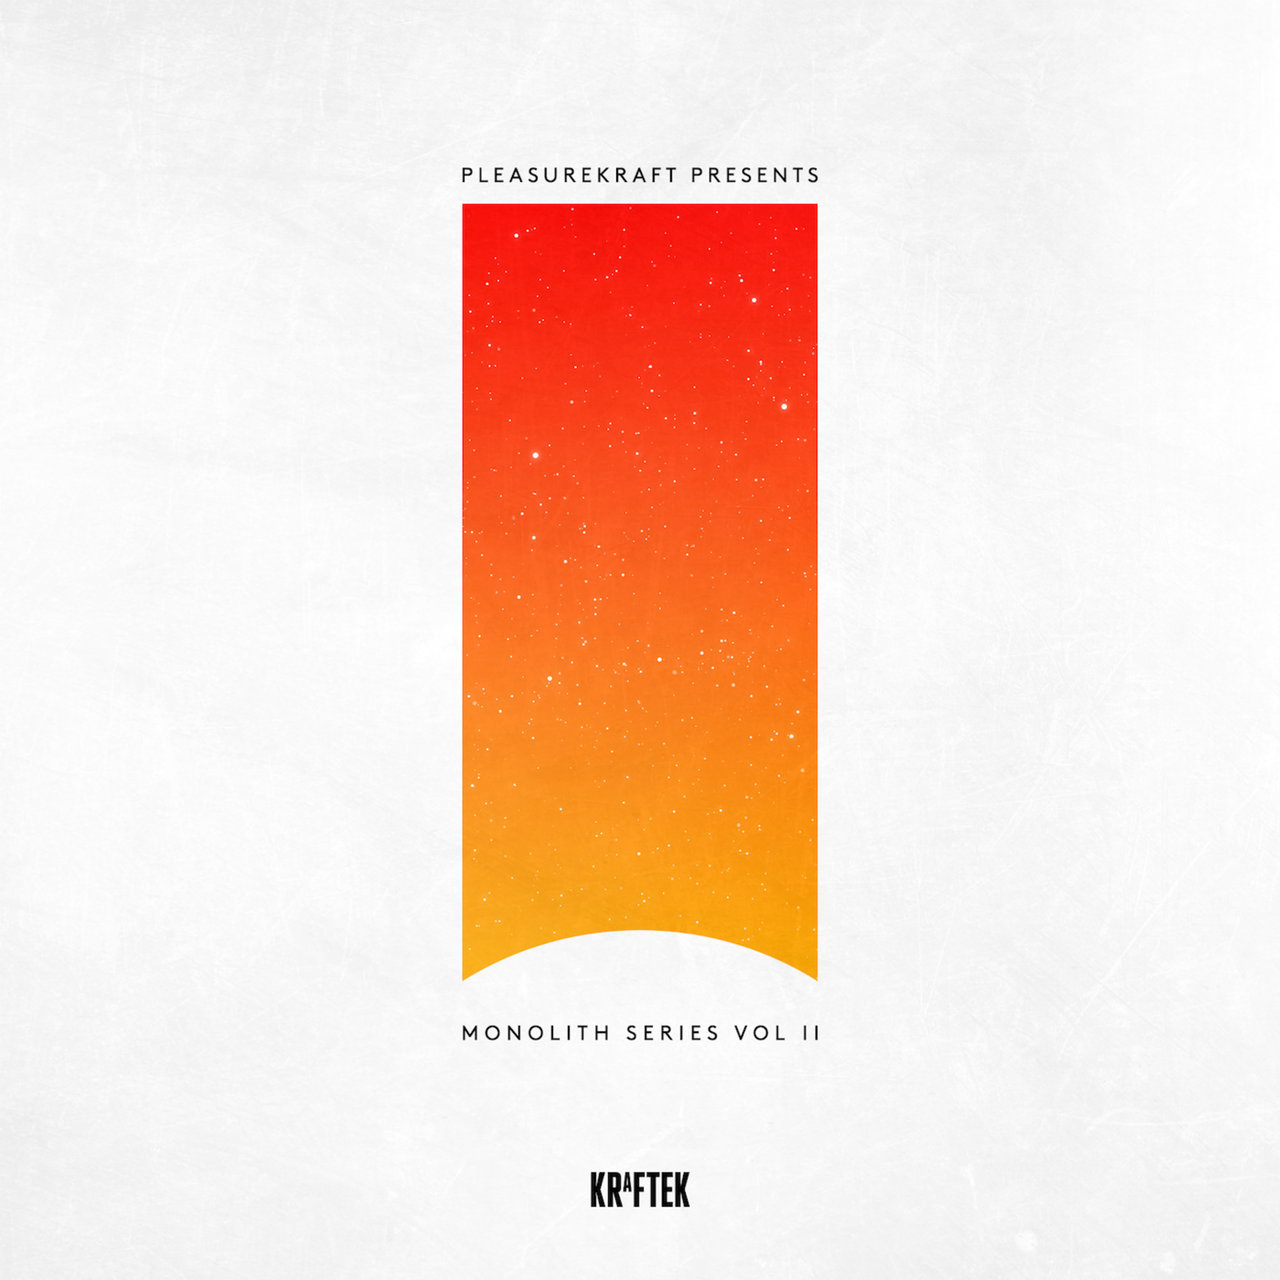 Pleasurekraft presents: Monolith Series Volume 2